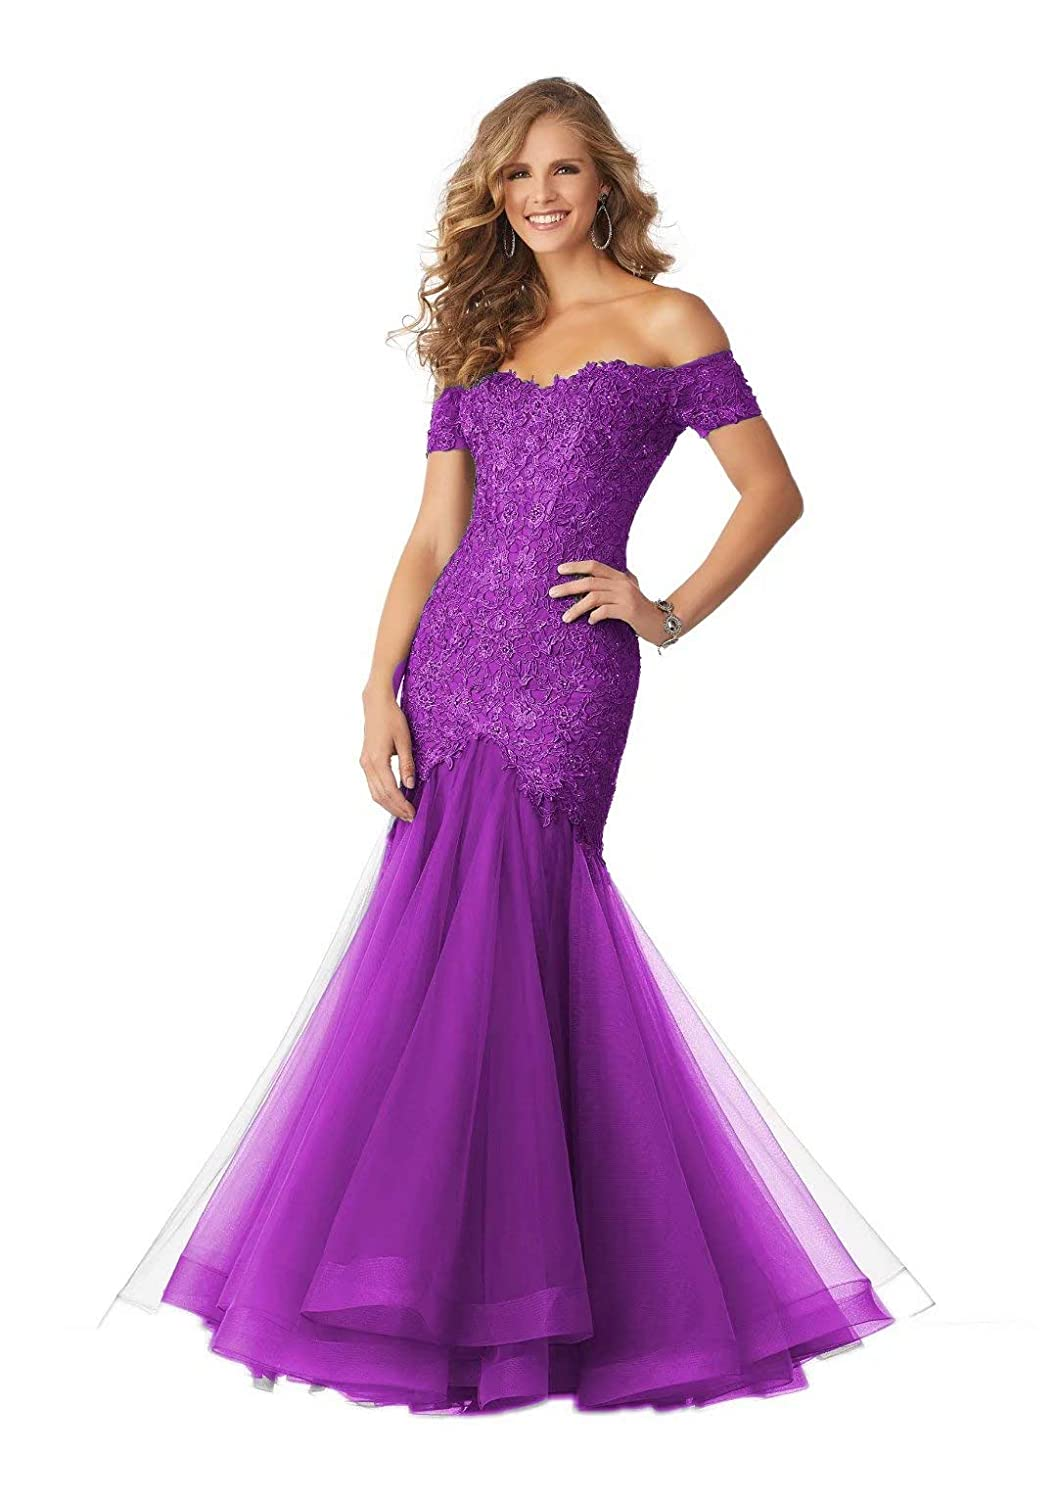 color 4 Unions Women's Off Shoulder Sexy Mermaid Long Formal Dresses Tulle Lace Applique Evening Prom Gown